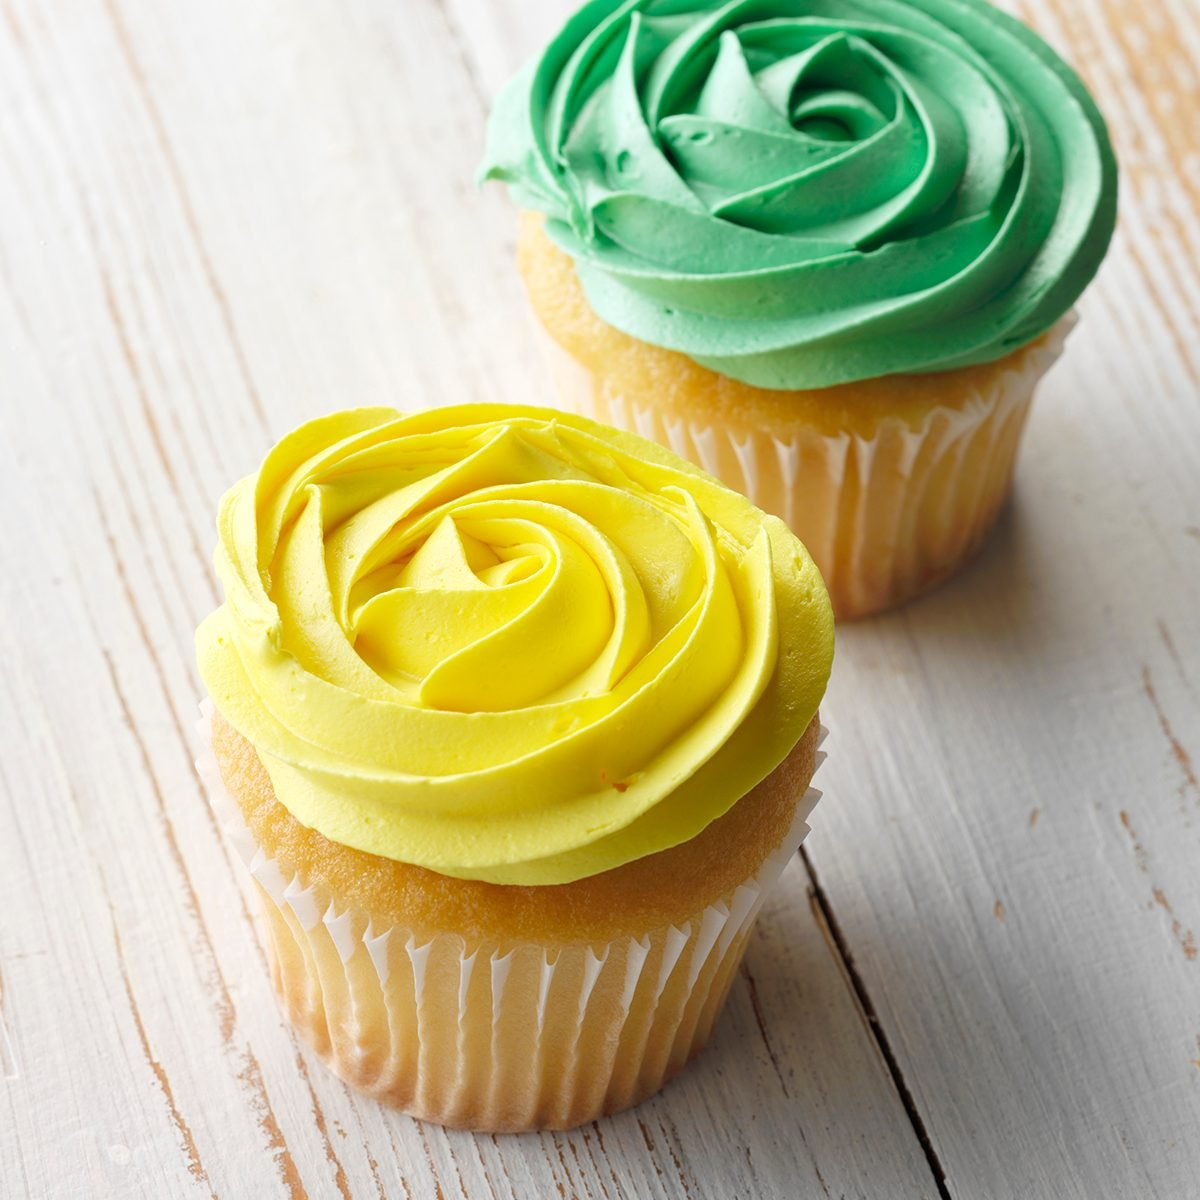 11 Easy Cupcake Decorating Ideas | Taste of Home